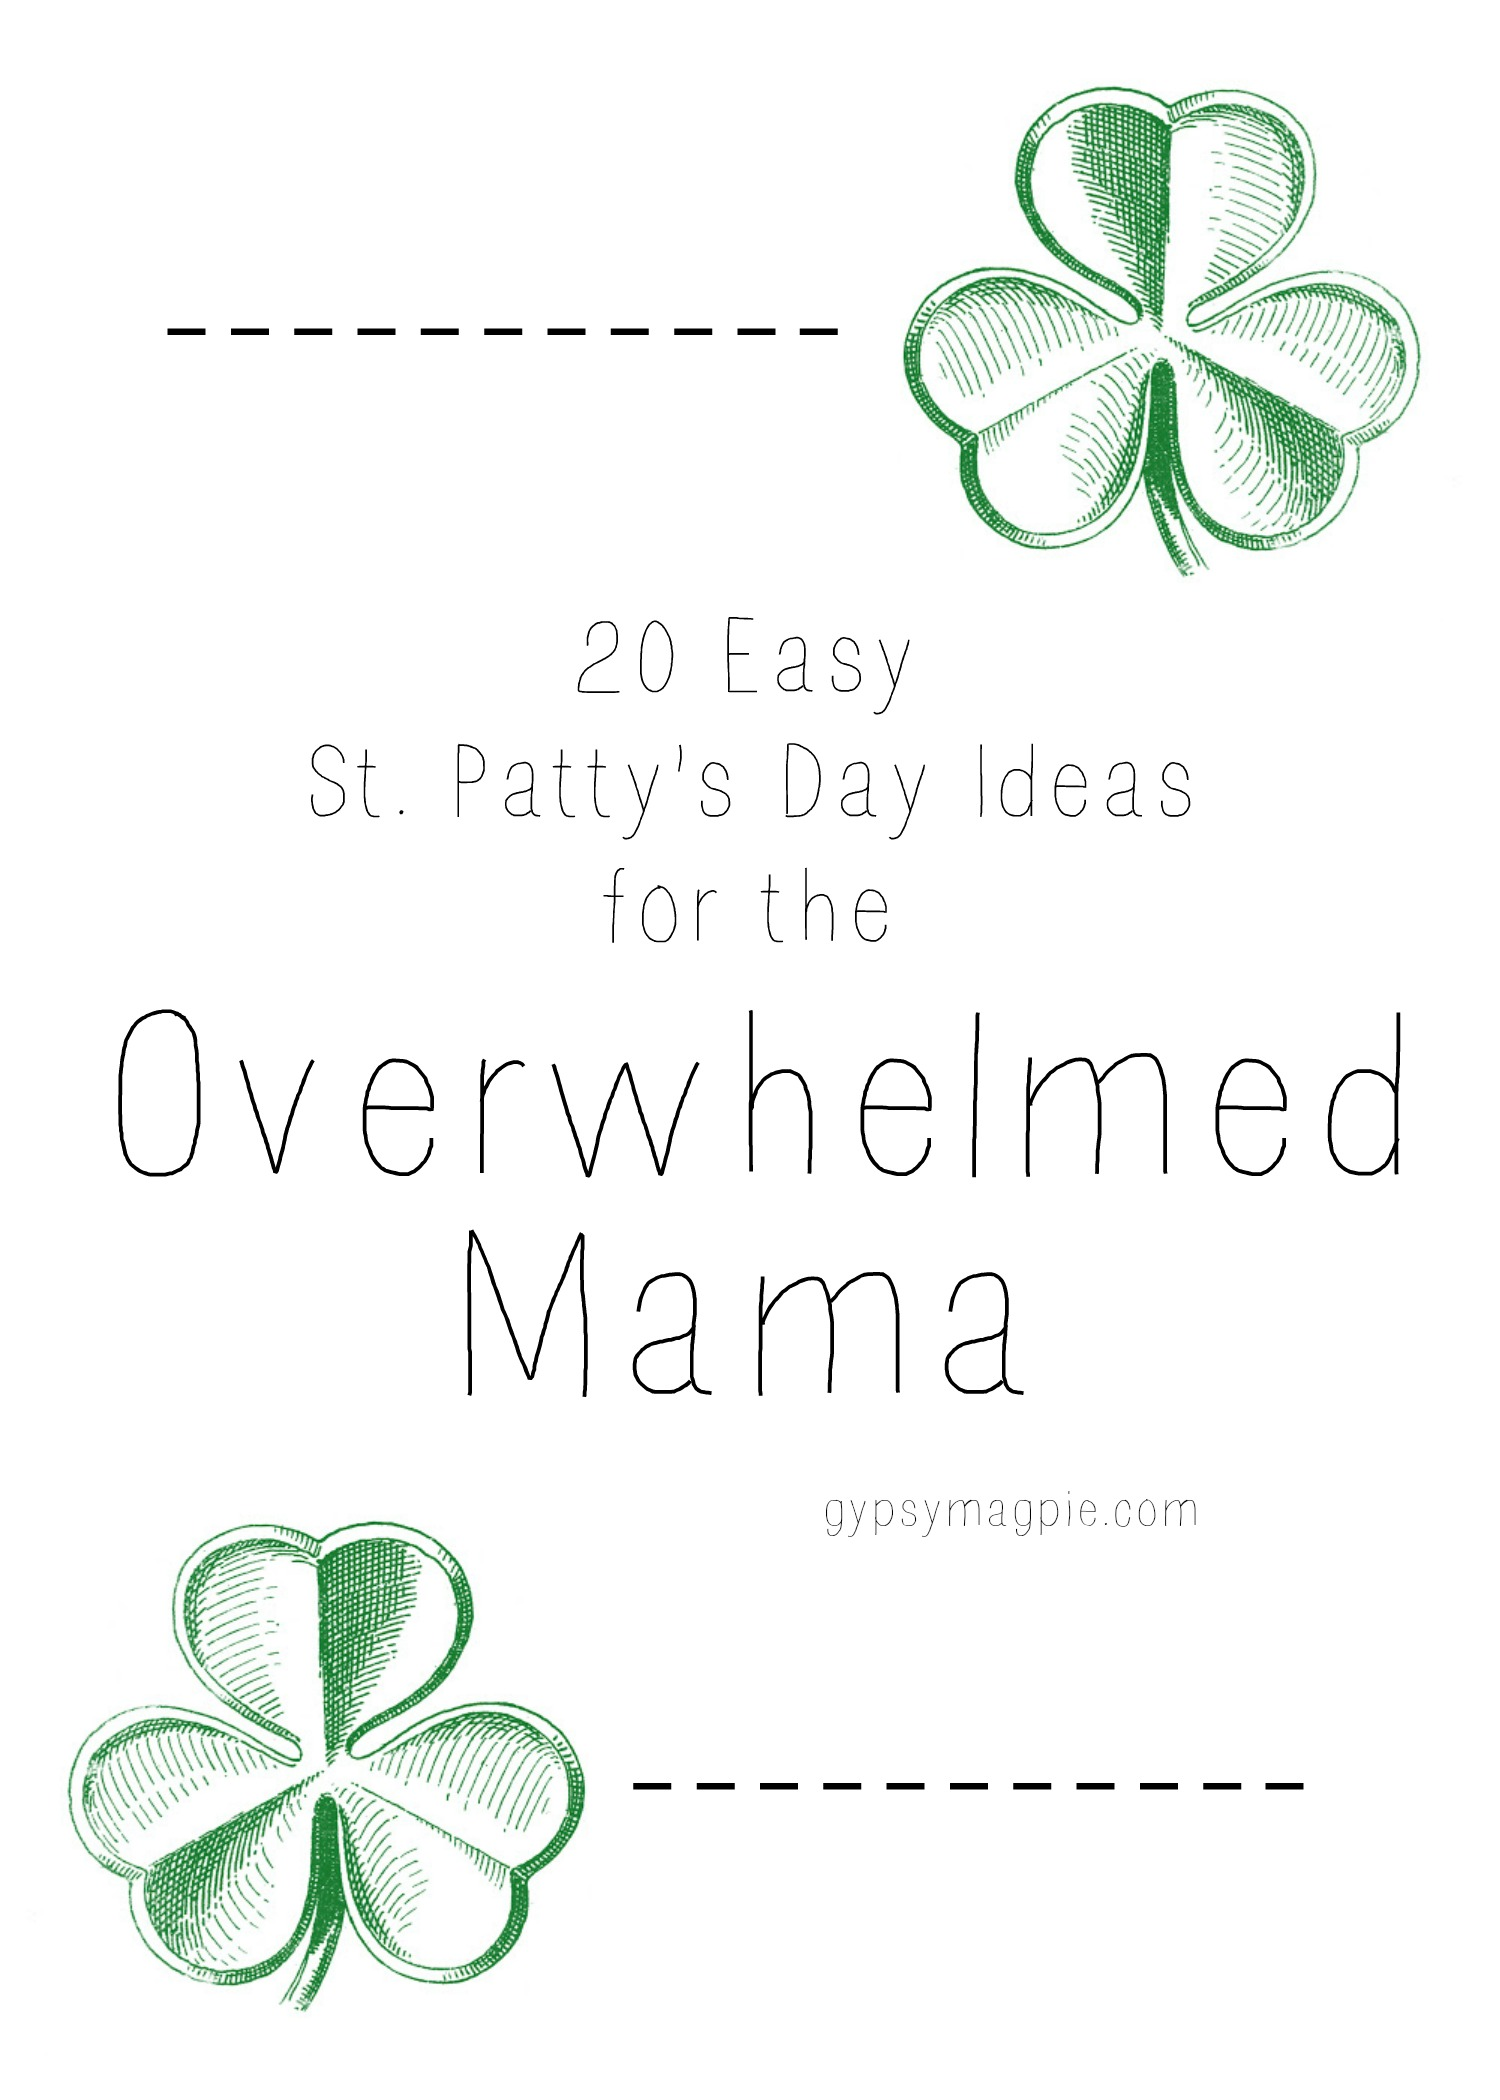 20 Easy St. Patty's Day Ideas for the Overwhelmed Mama | Gypsy Magpie